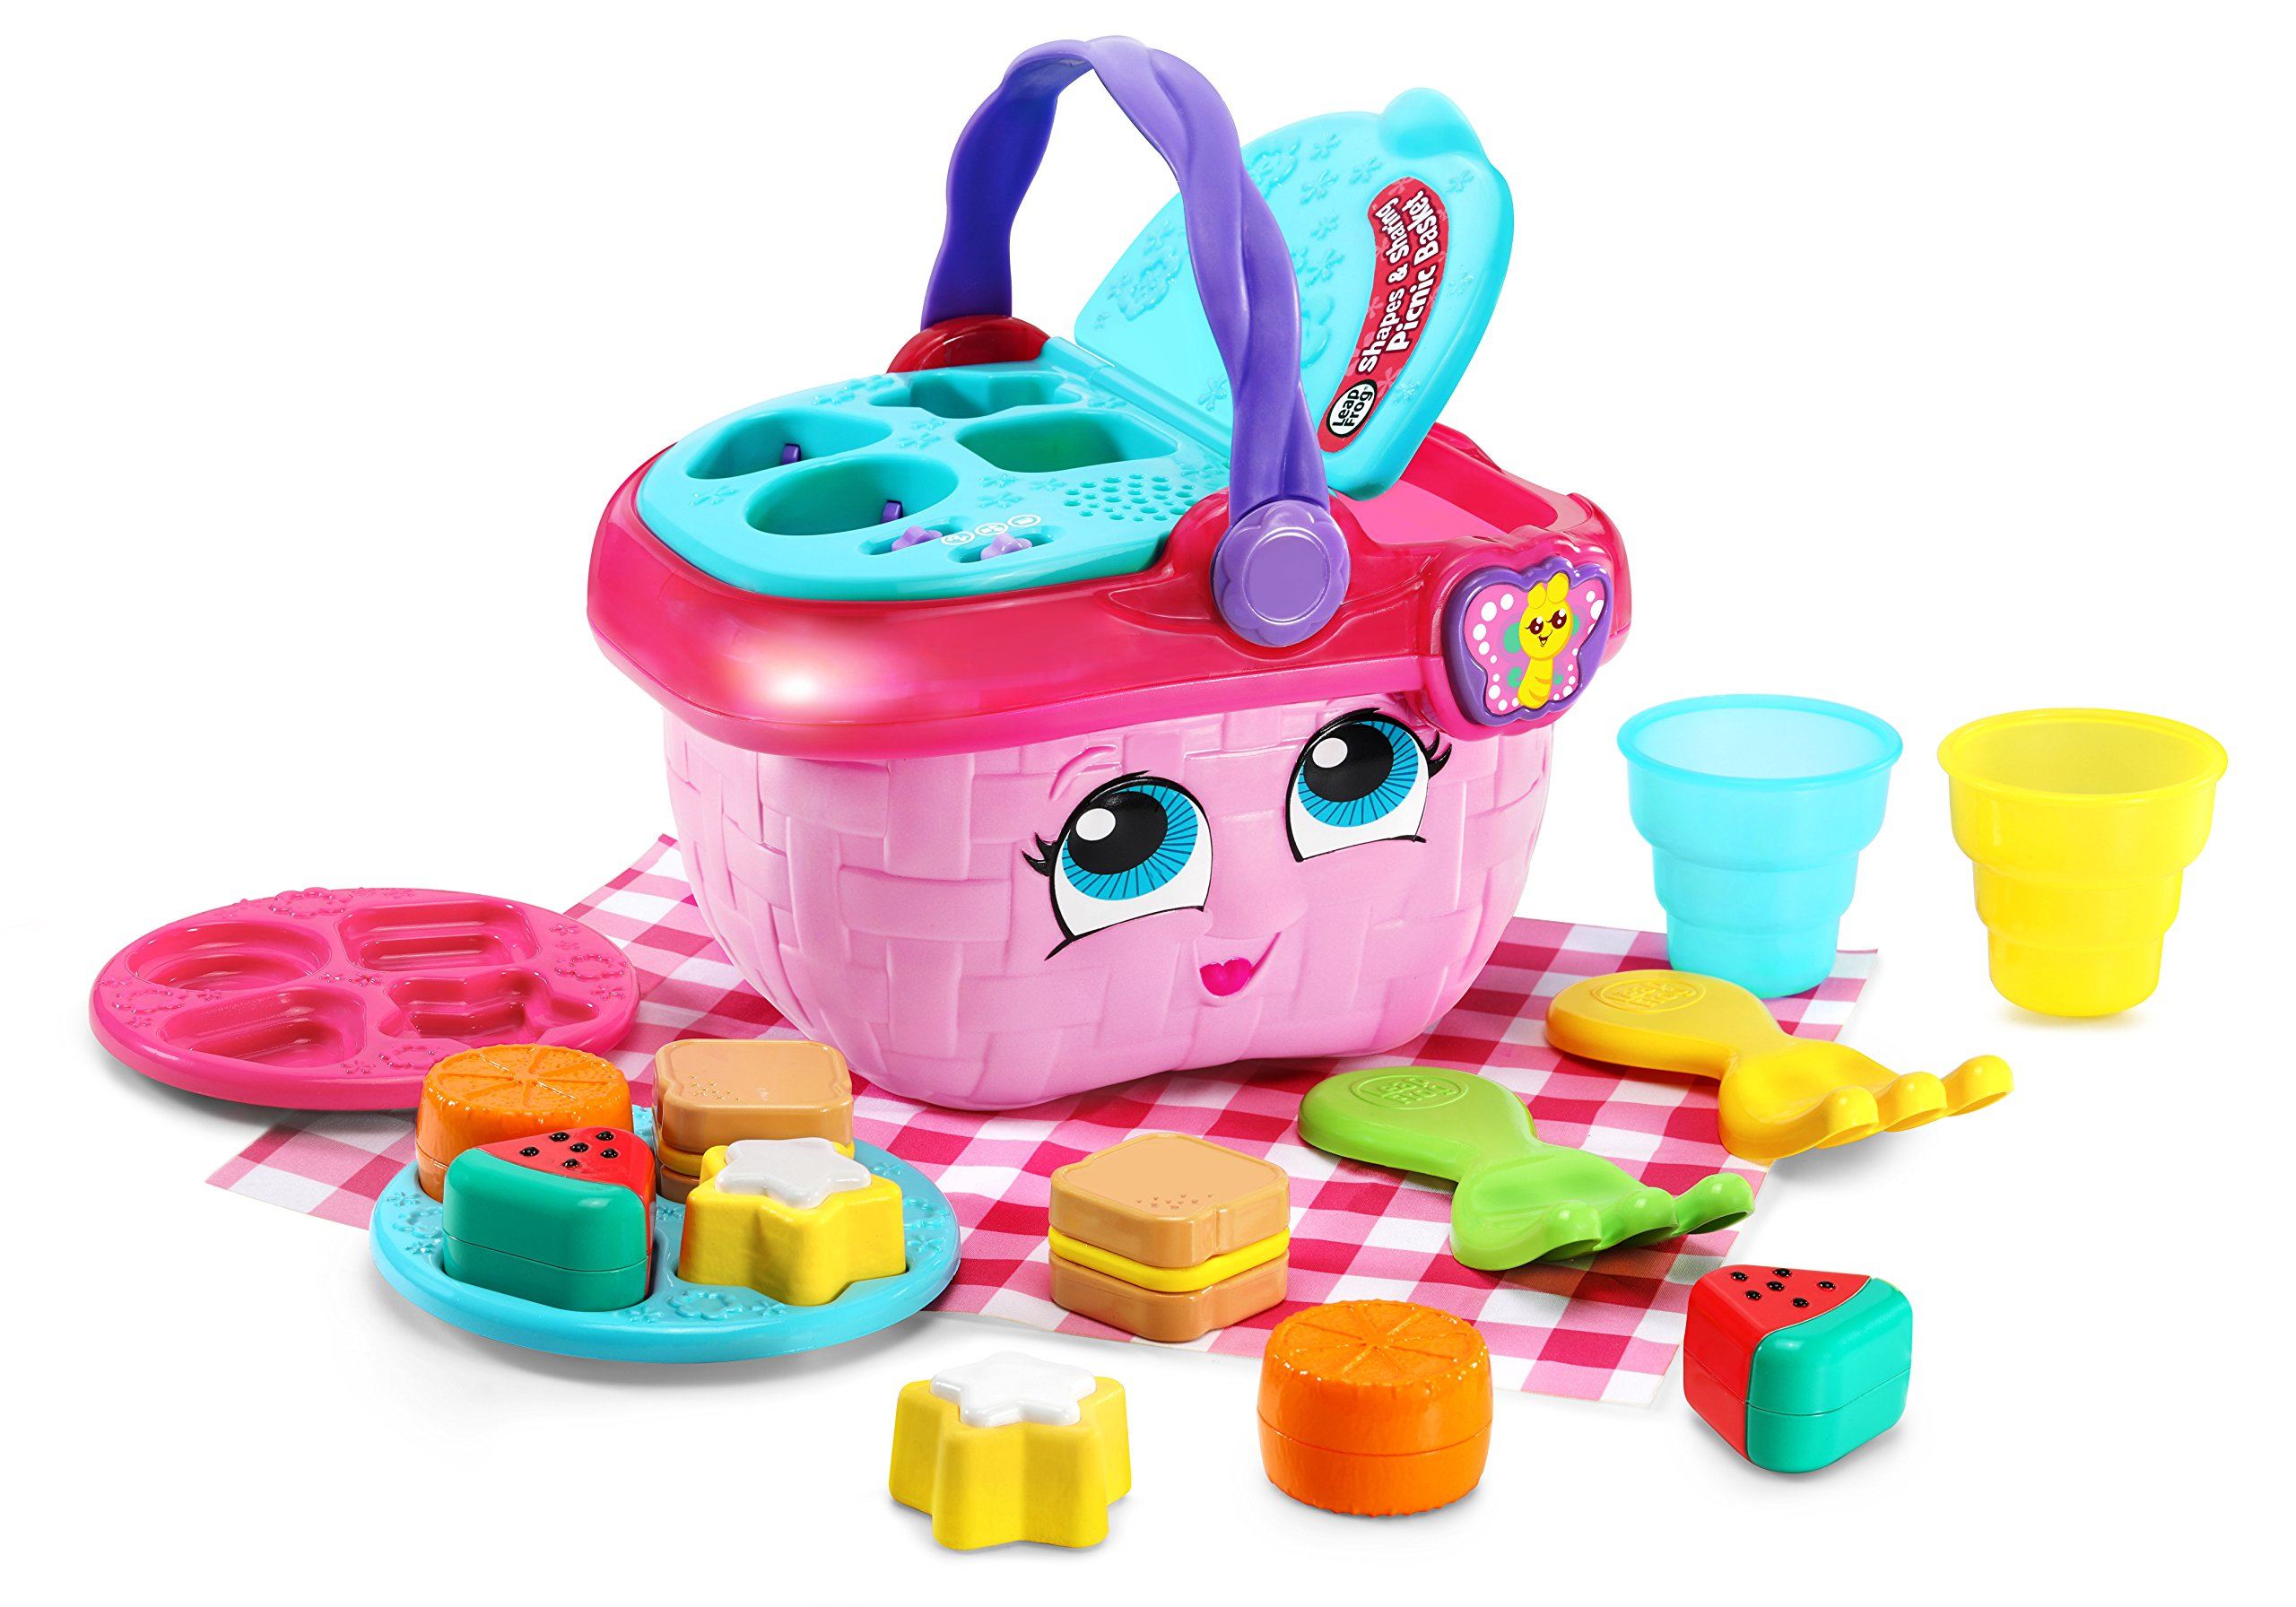 LeapFrog Shapes & Sharing Picnic Basket, Pink by LeapFrog (Image #1)